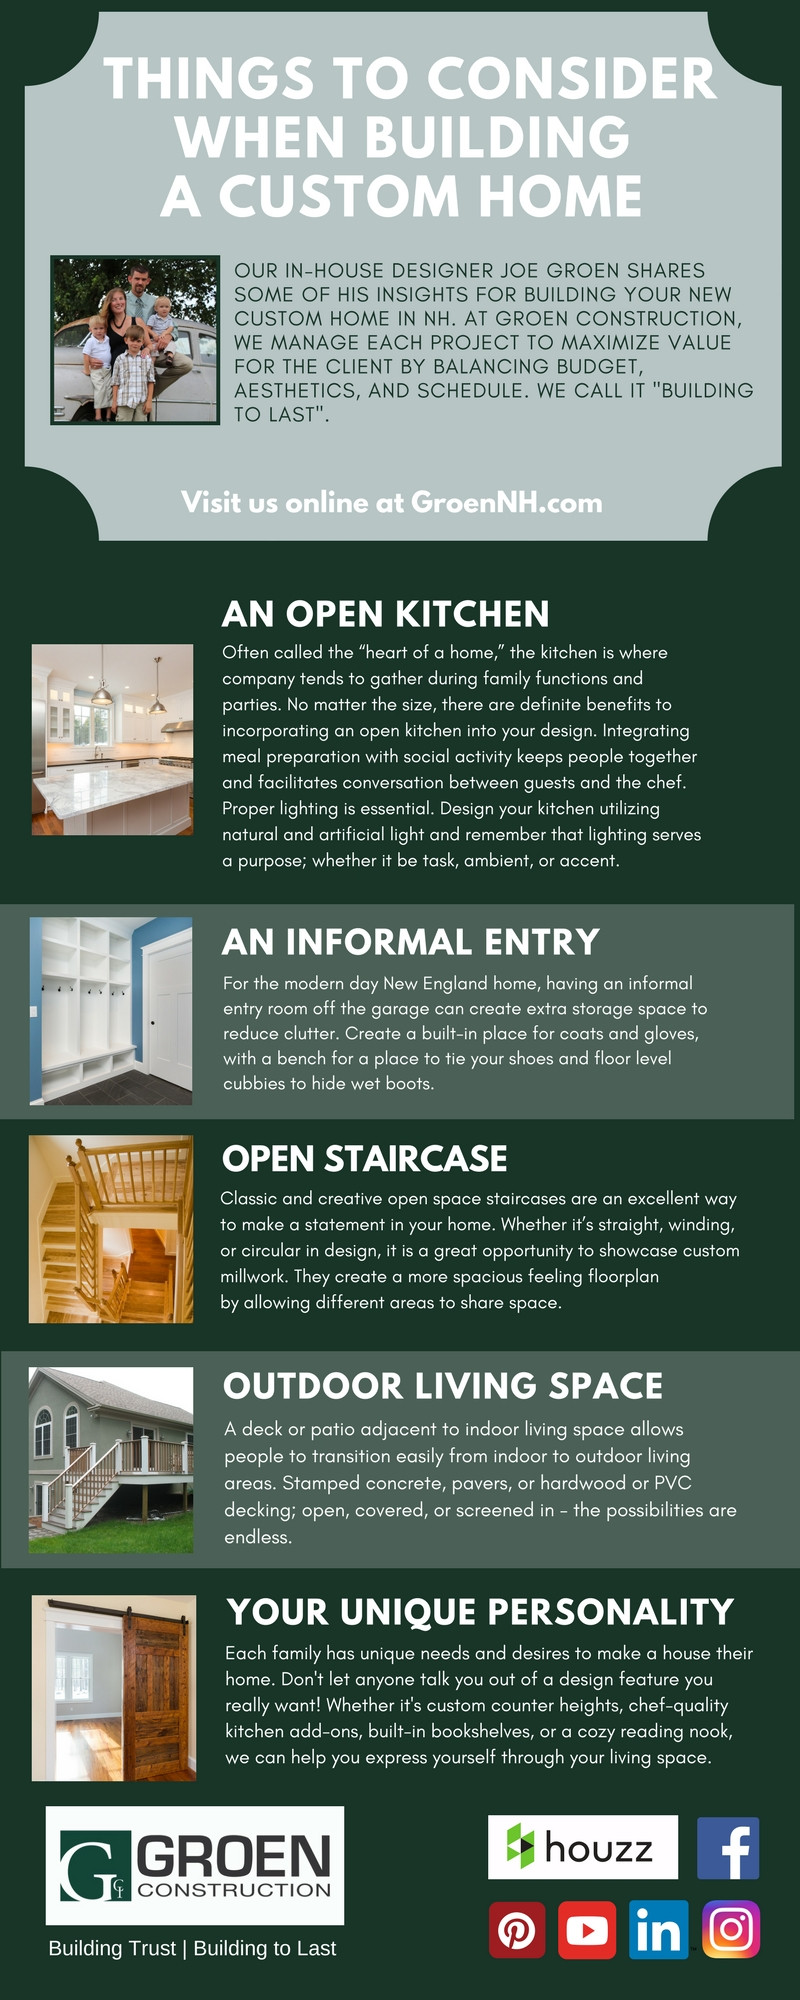 Things to Consider When Building A Custom Home - Groen Construction - Custom Home Builder